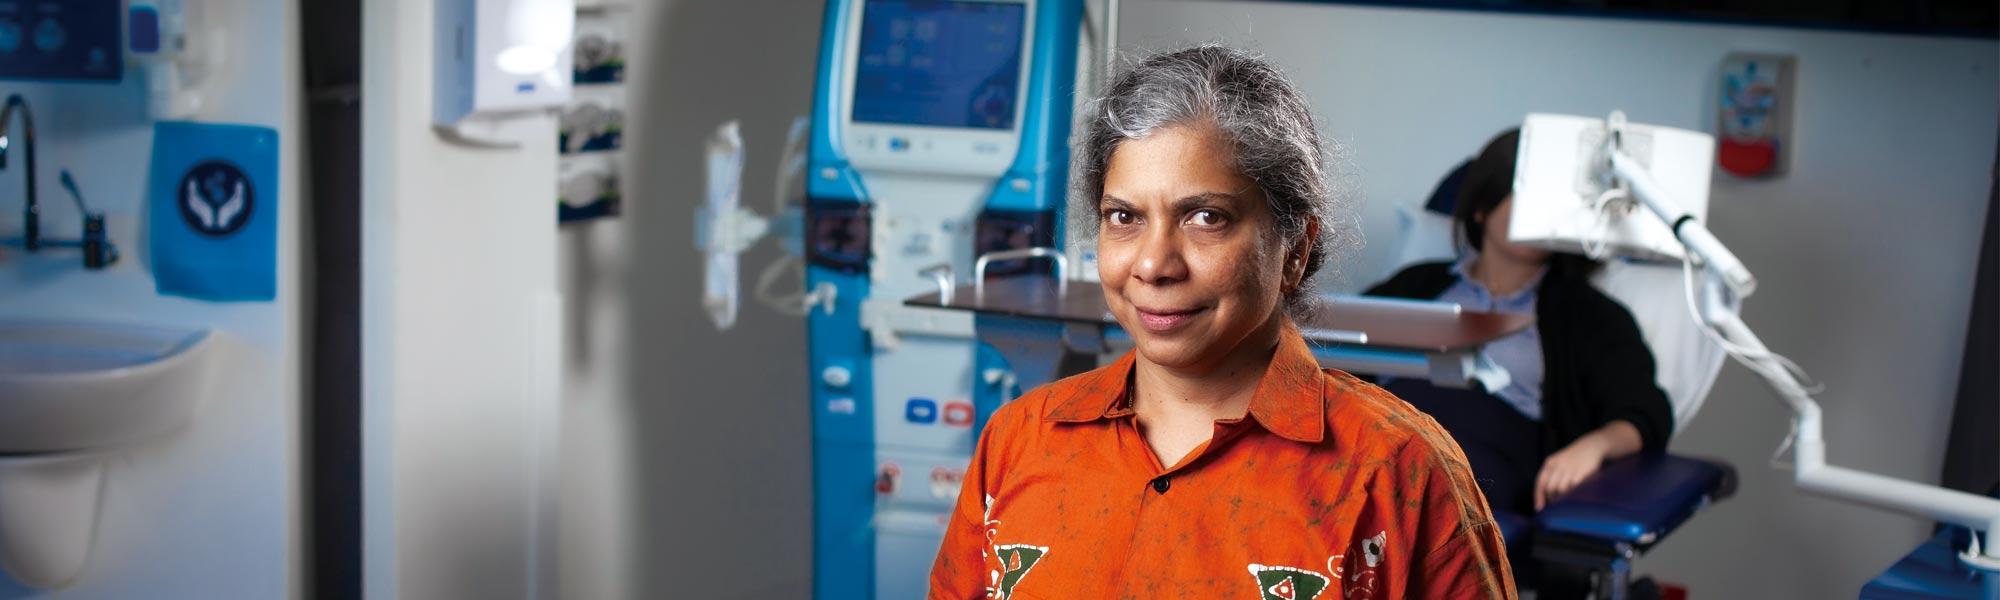 Professor Nilmini Wickramasinghe standing in a hospital with a patient getting tests whilst lying down behind her.